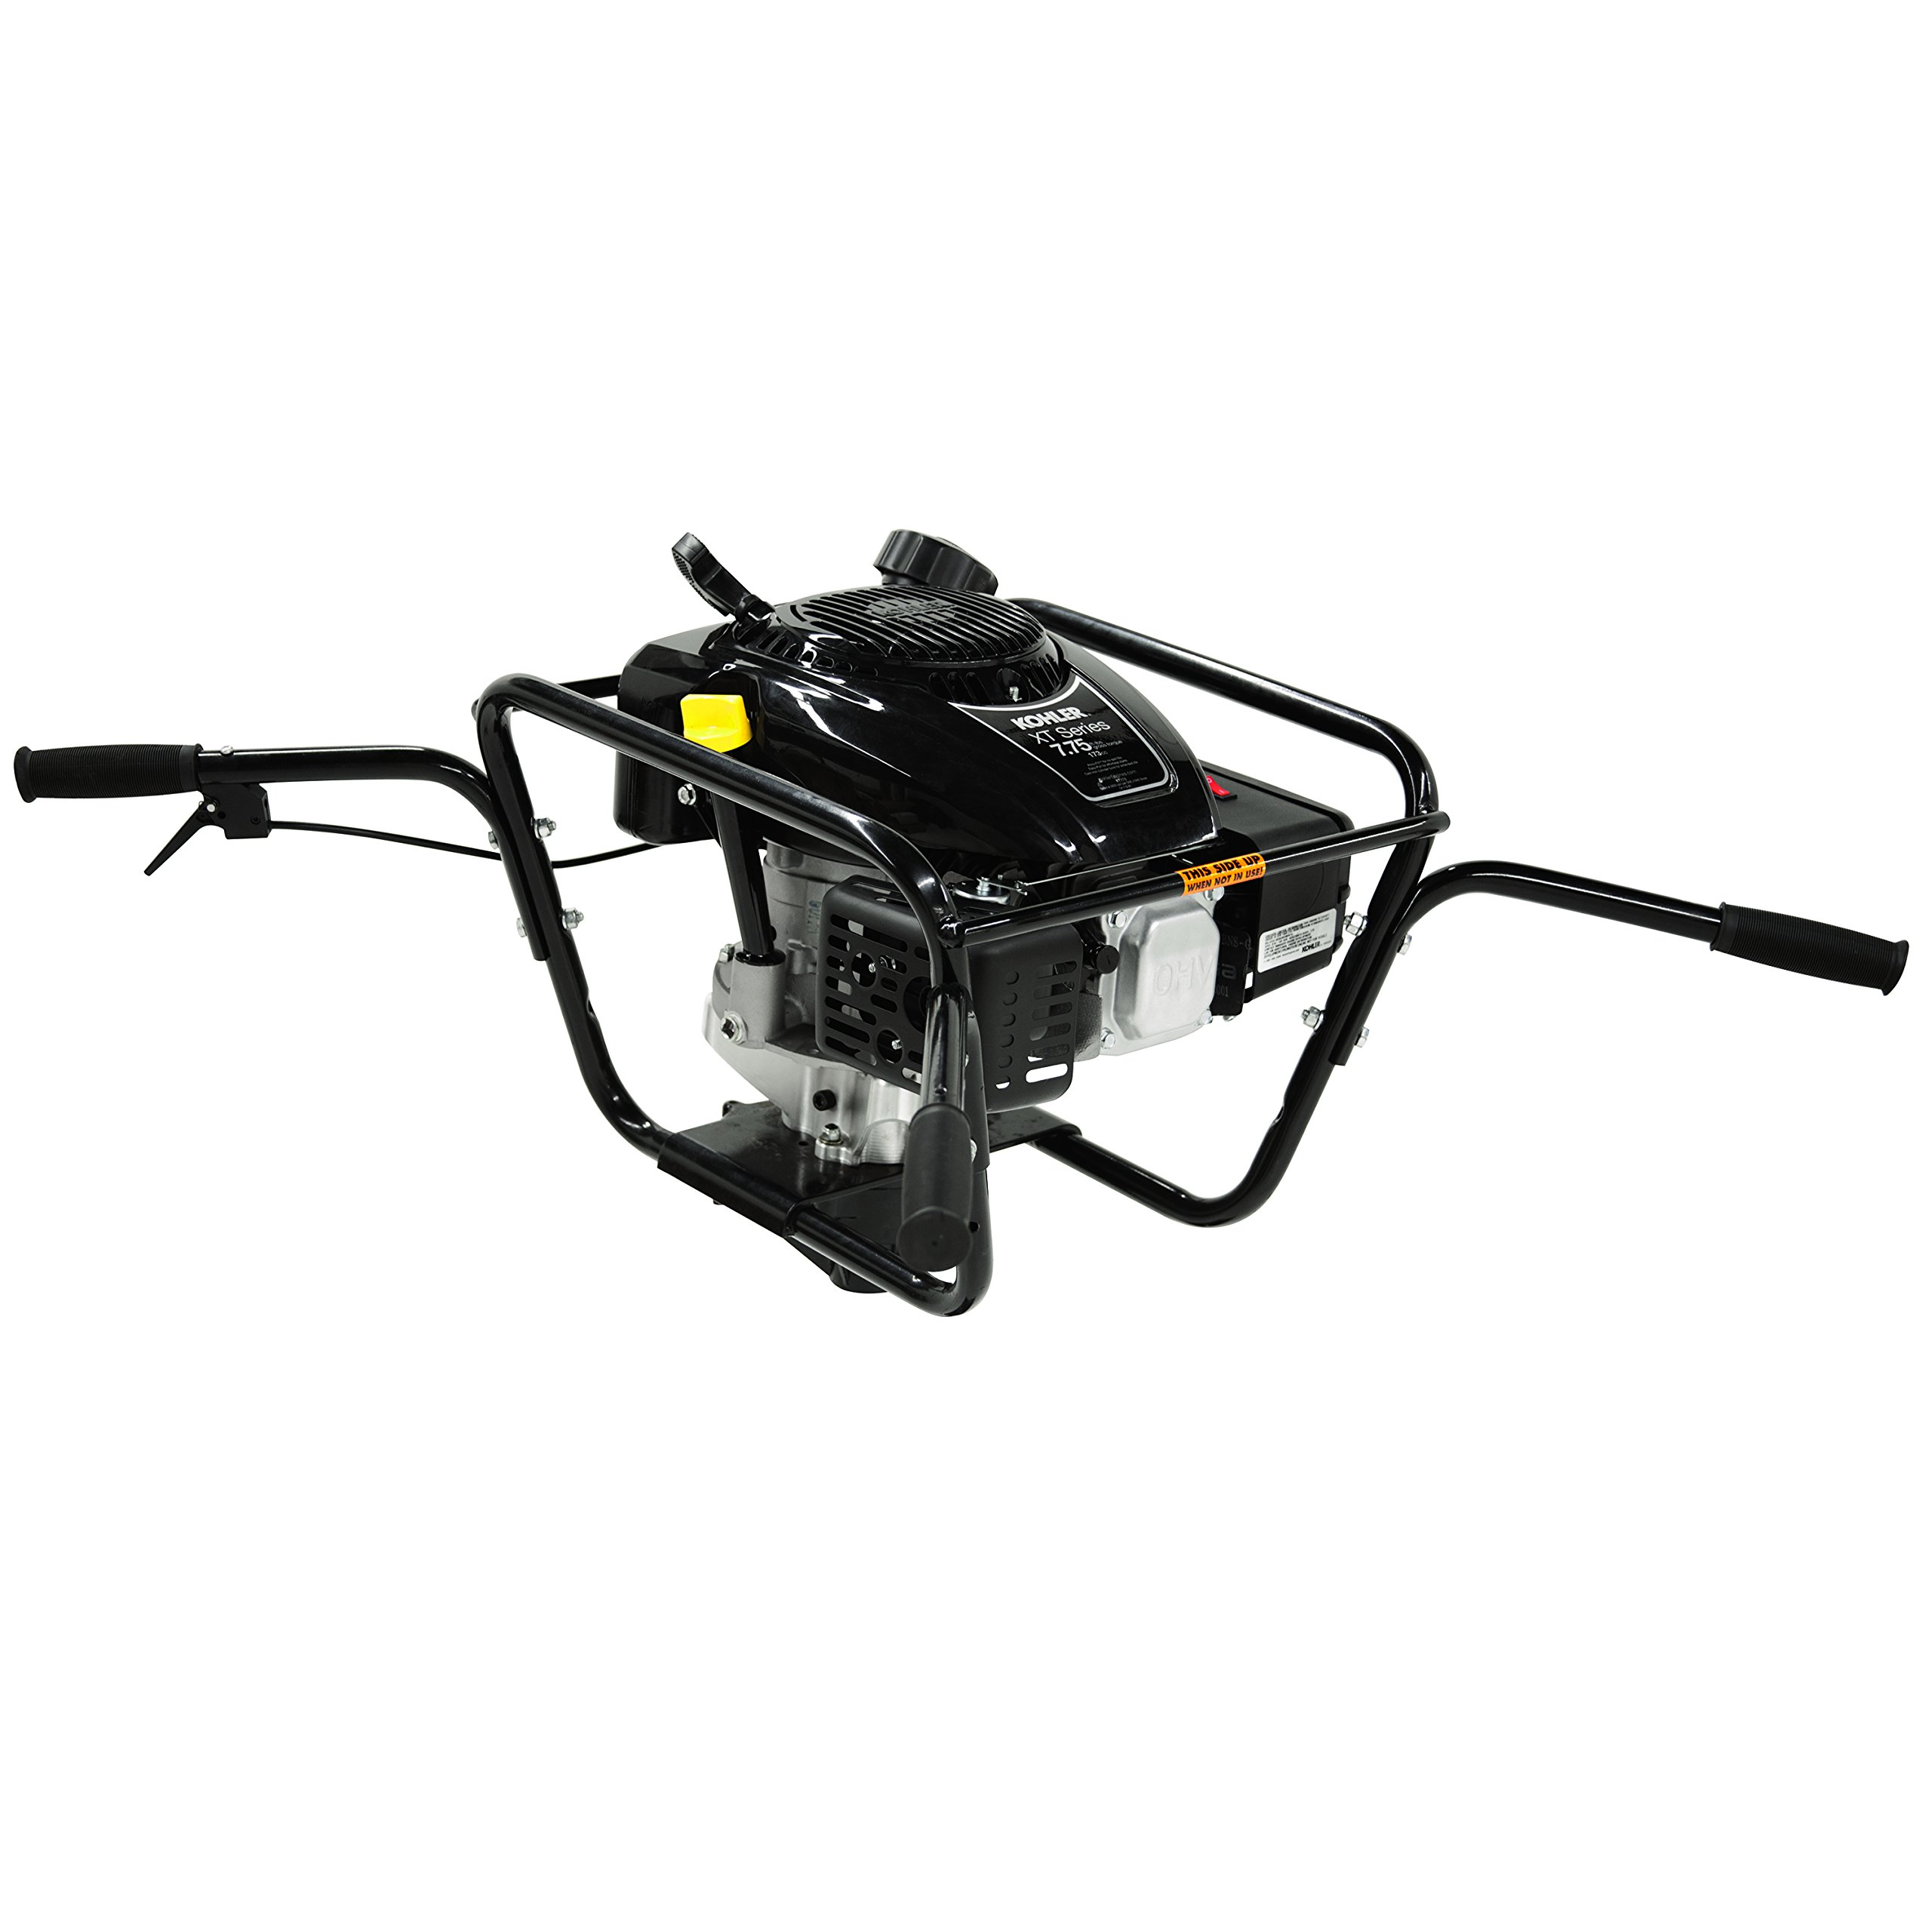 Earthquake 9800K 2-Person Earth Auger Powerhead with 173cc 4-Cycle Kohler Engine (CARB Compliant) by Earthquake